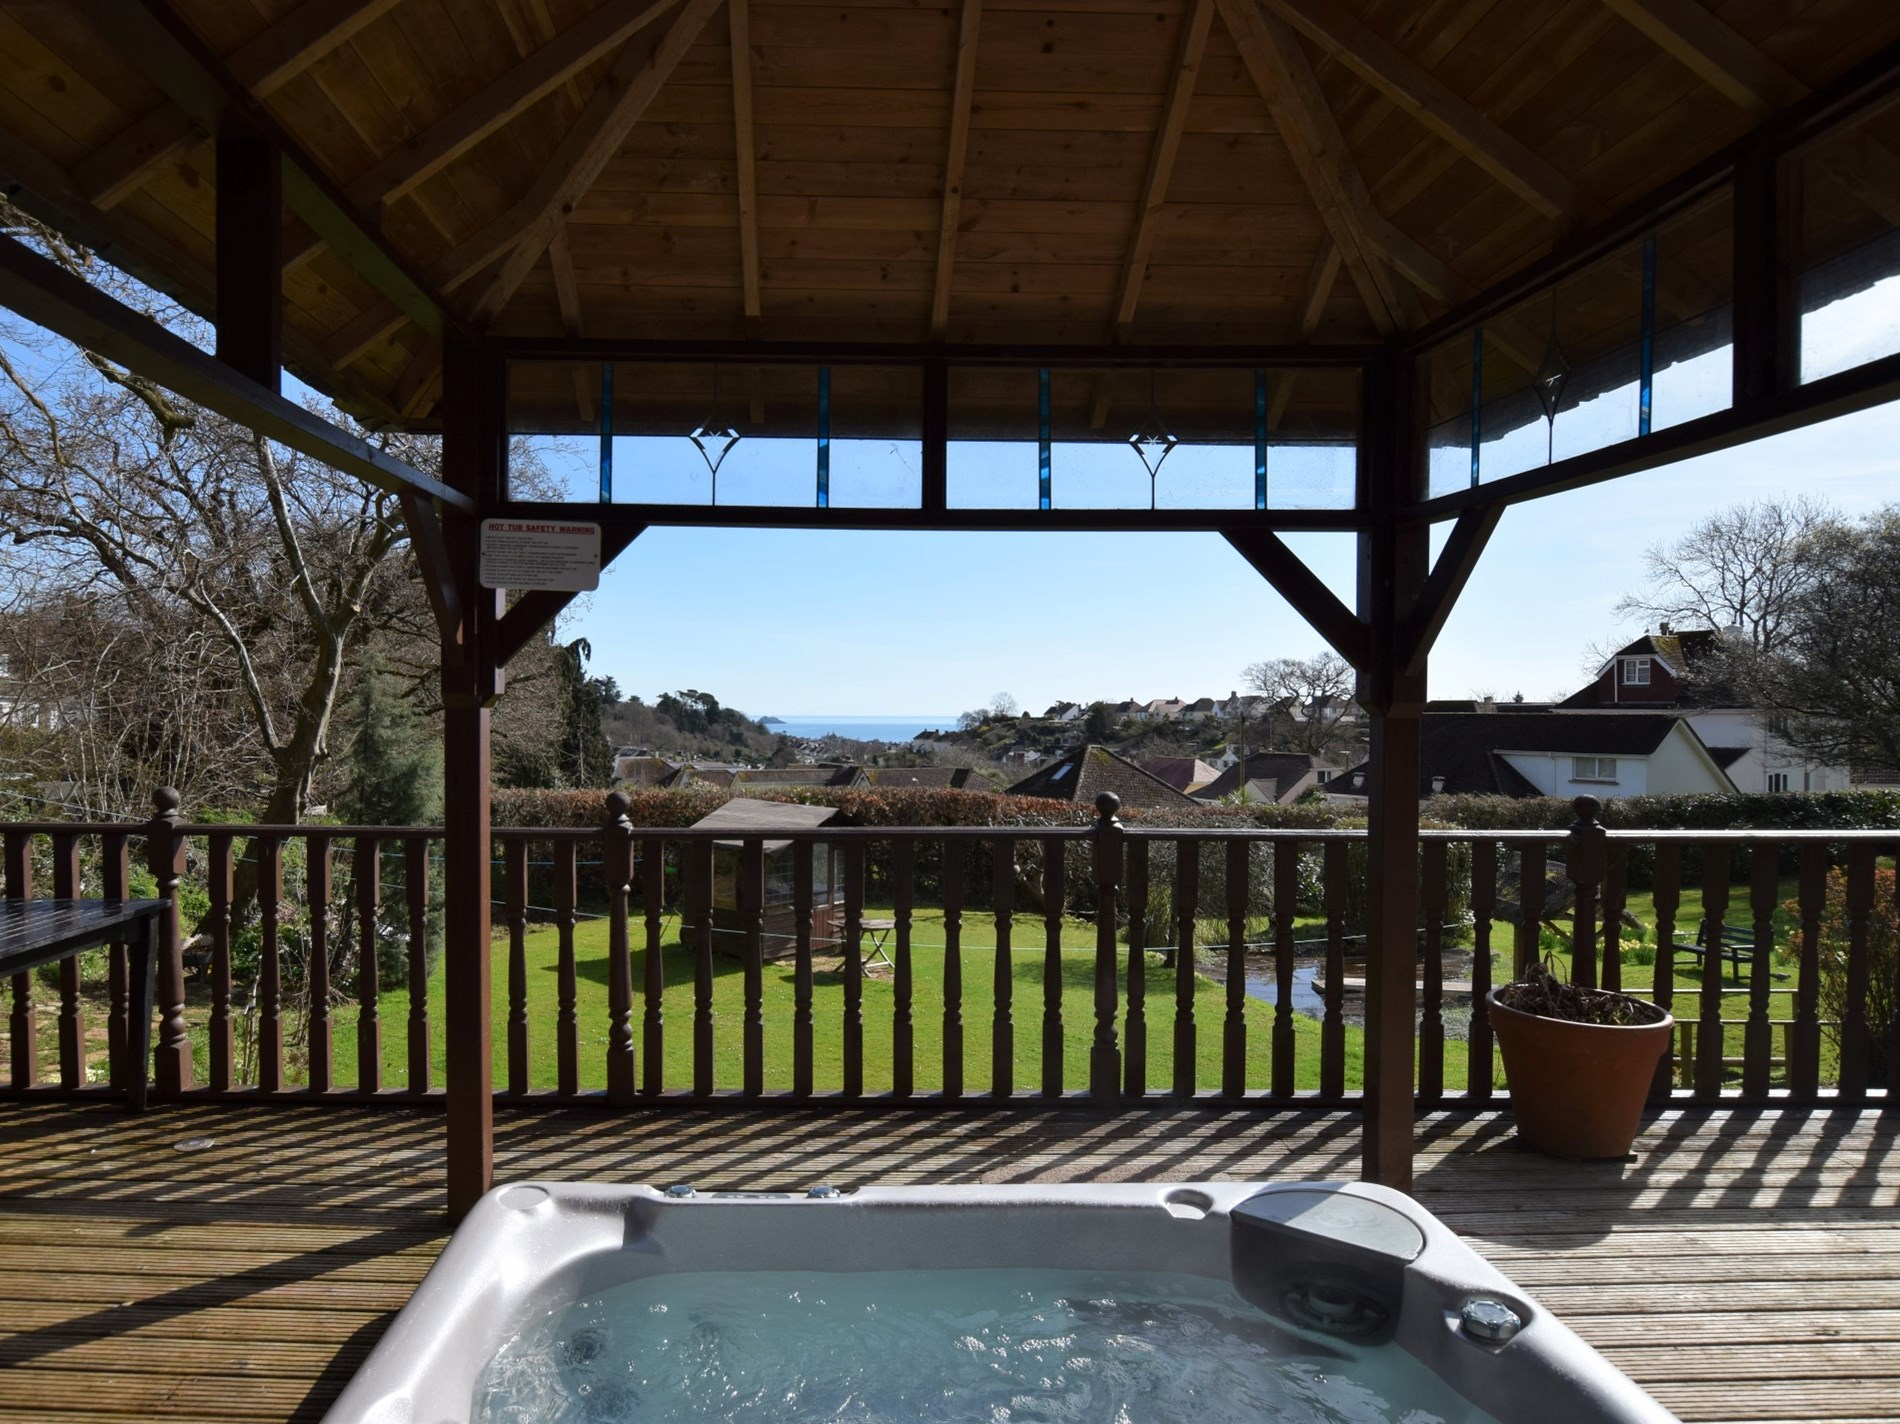 Enjoy the private hot tub with far reaching sea views over Torbay